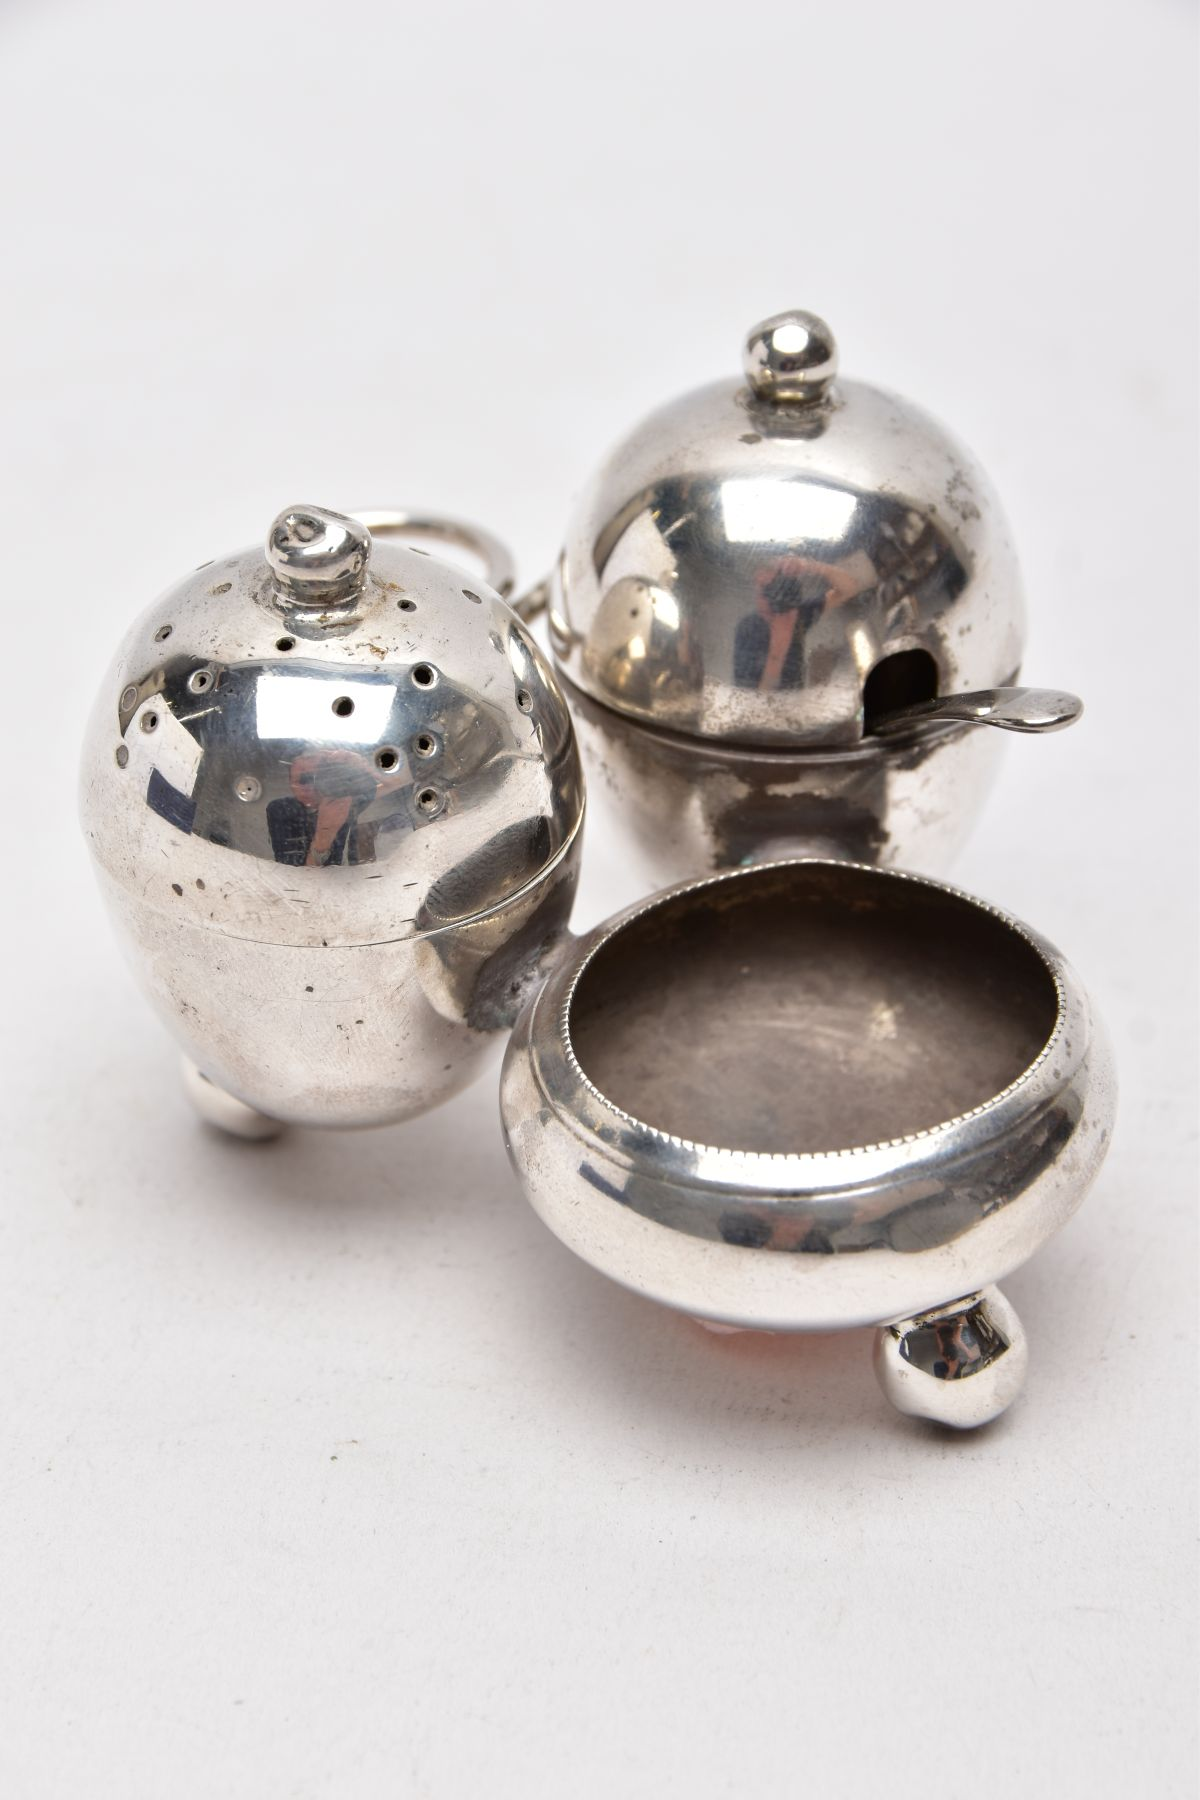 AN EARLY 20TH CENTURY 'MAPPIN & WEBB' CRUET SET, a three piece set with integral strand, - Image 2 of 5